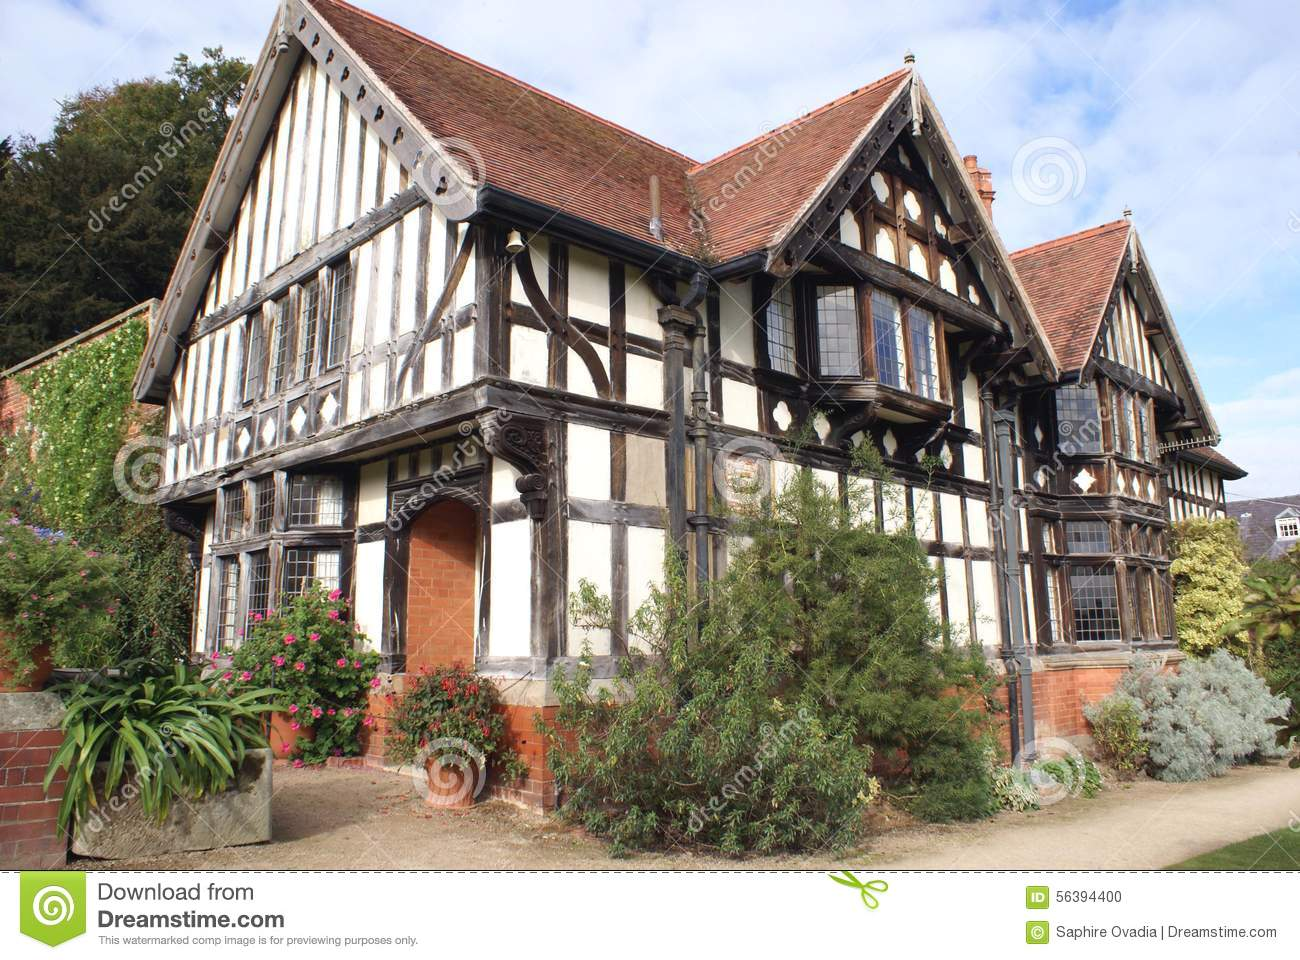 Tudor Architecture tudor architecture stock photo - image: 56394400